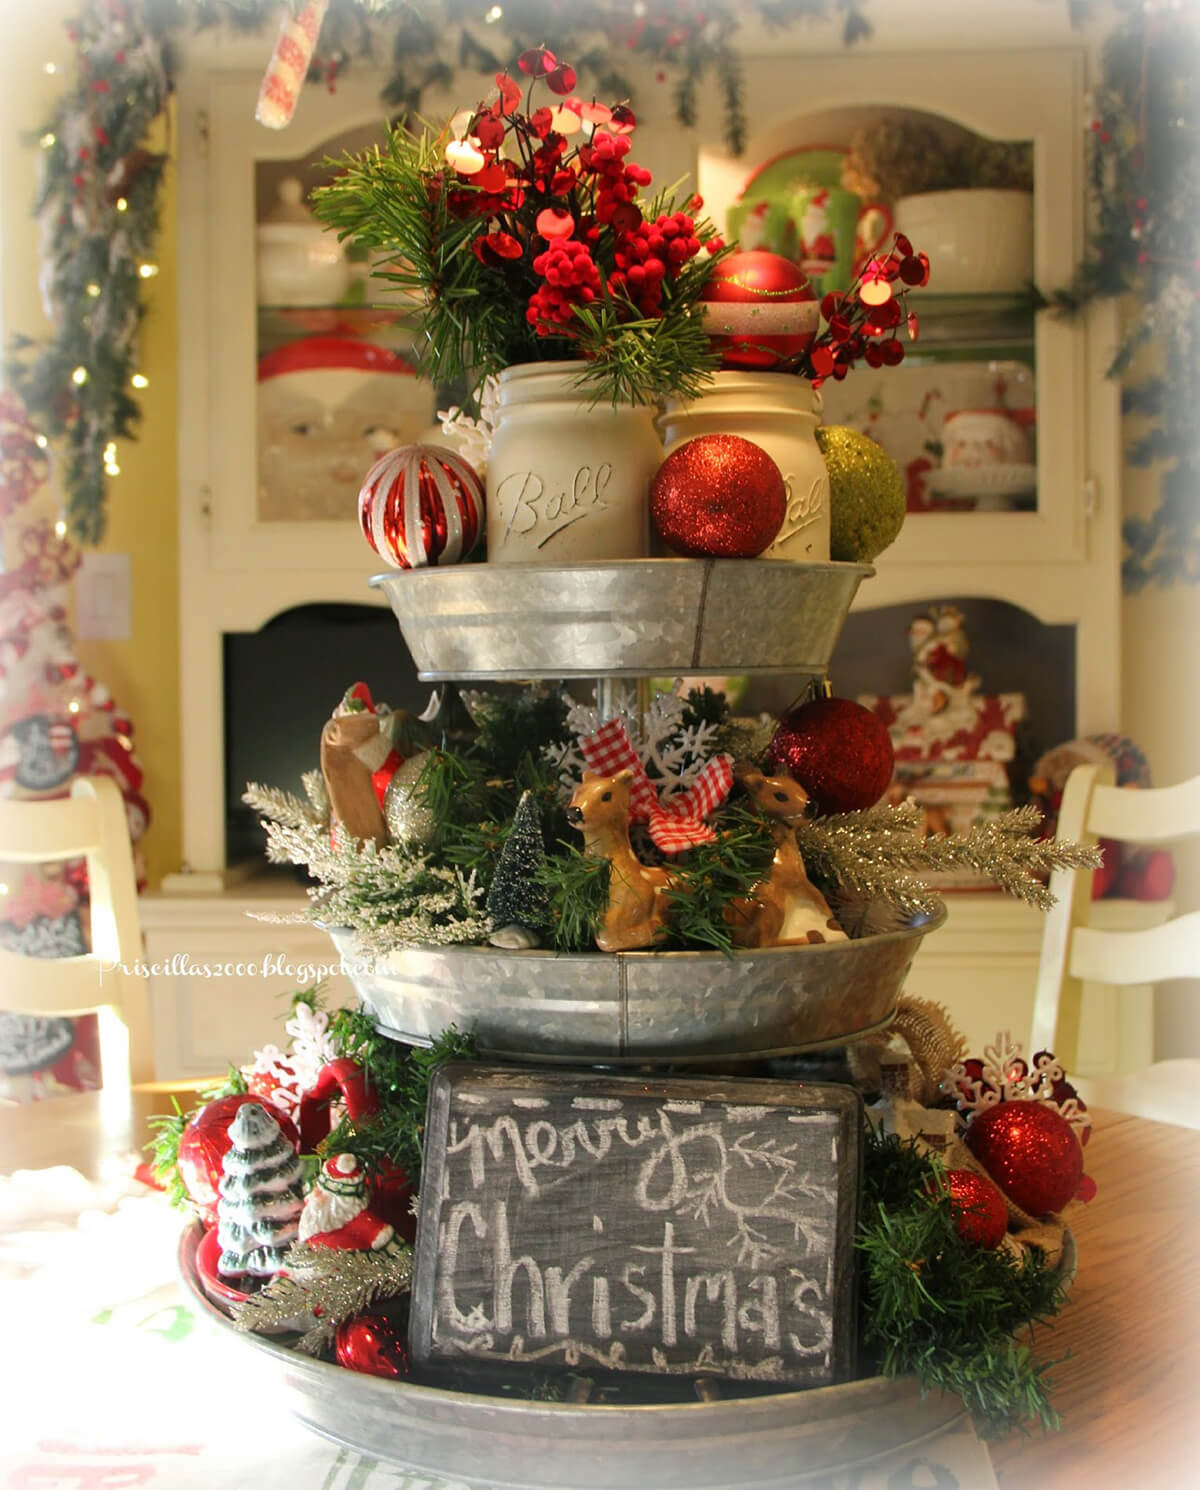 Tiered Tray Curated Christmas Display